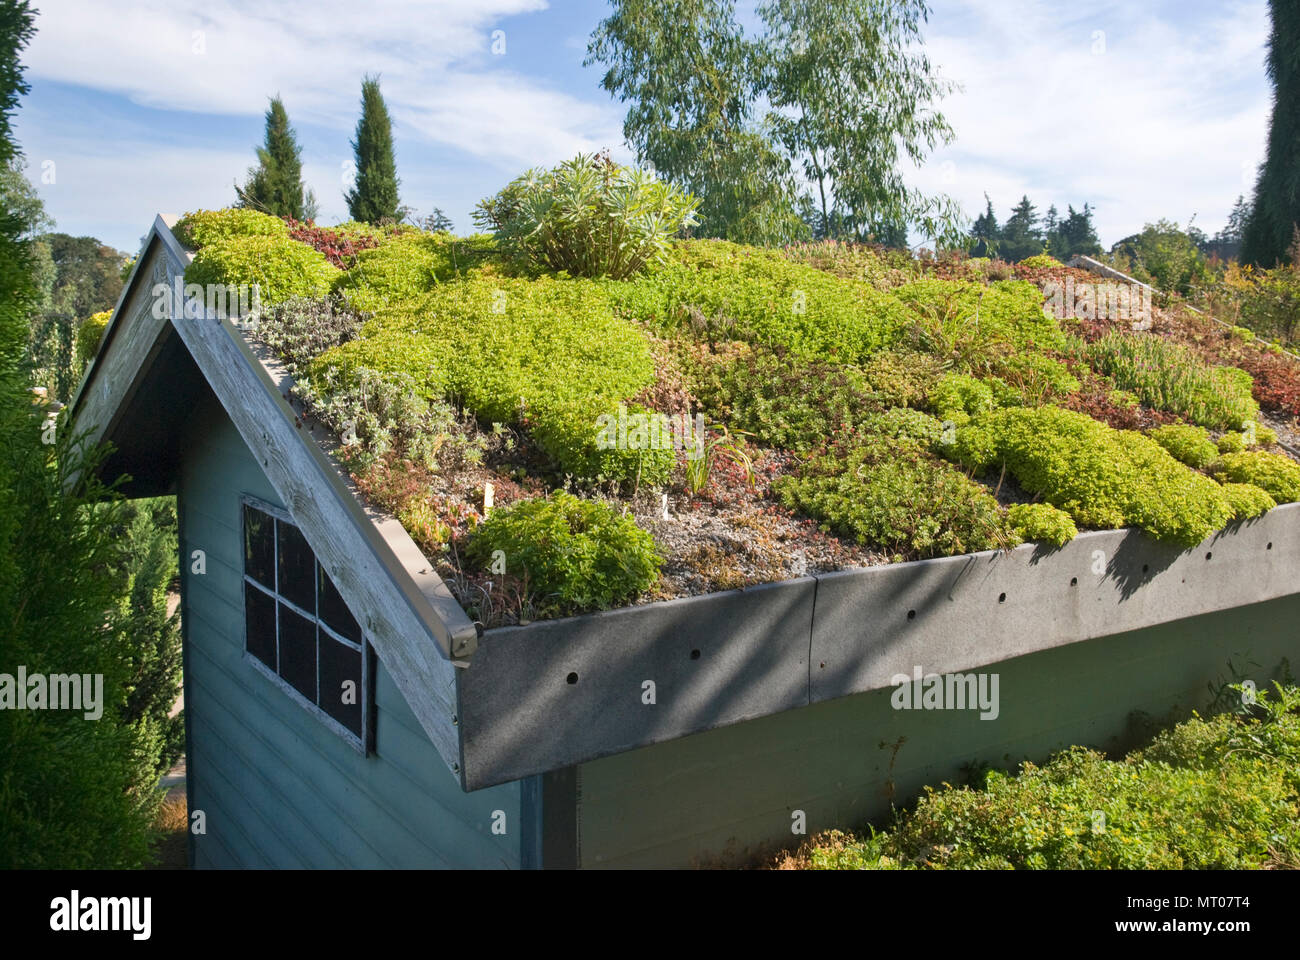 Environmentally sustainable eco-roof made from live plan material including sedum and sempervivum - Stock Image